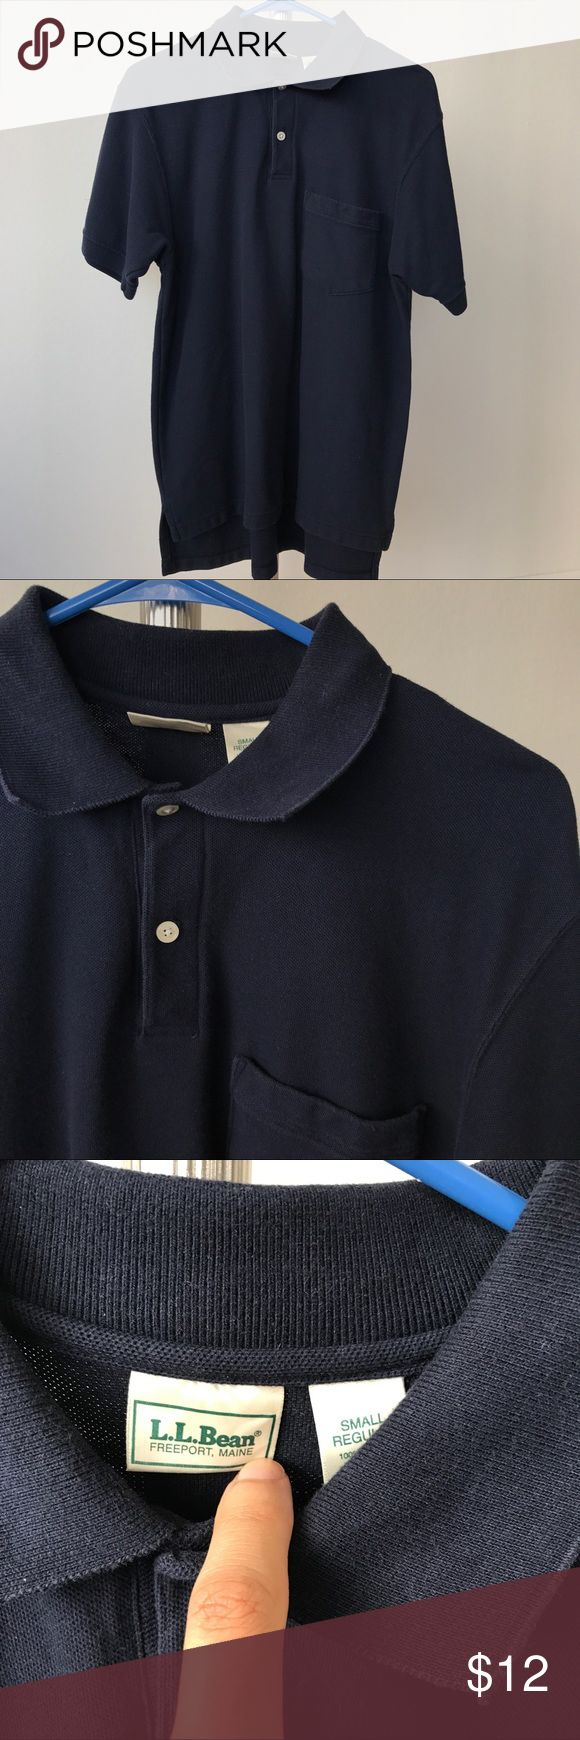 LL Bean Navy Blue Polo Shirt Men's Small Signs of general wear, but good quality. 100% Cotton Size: Small L.L. Bean Shirts Polos